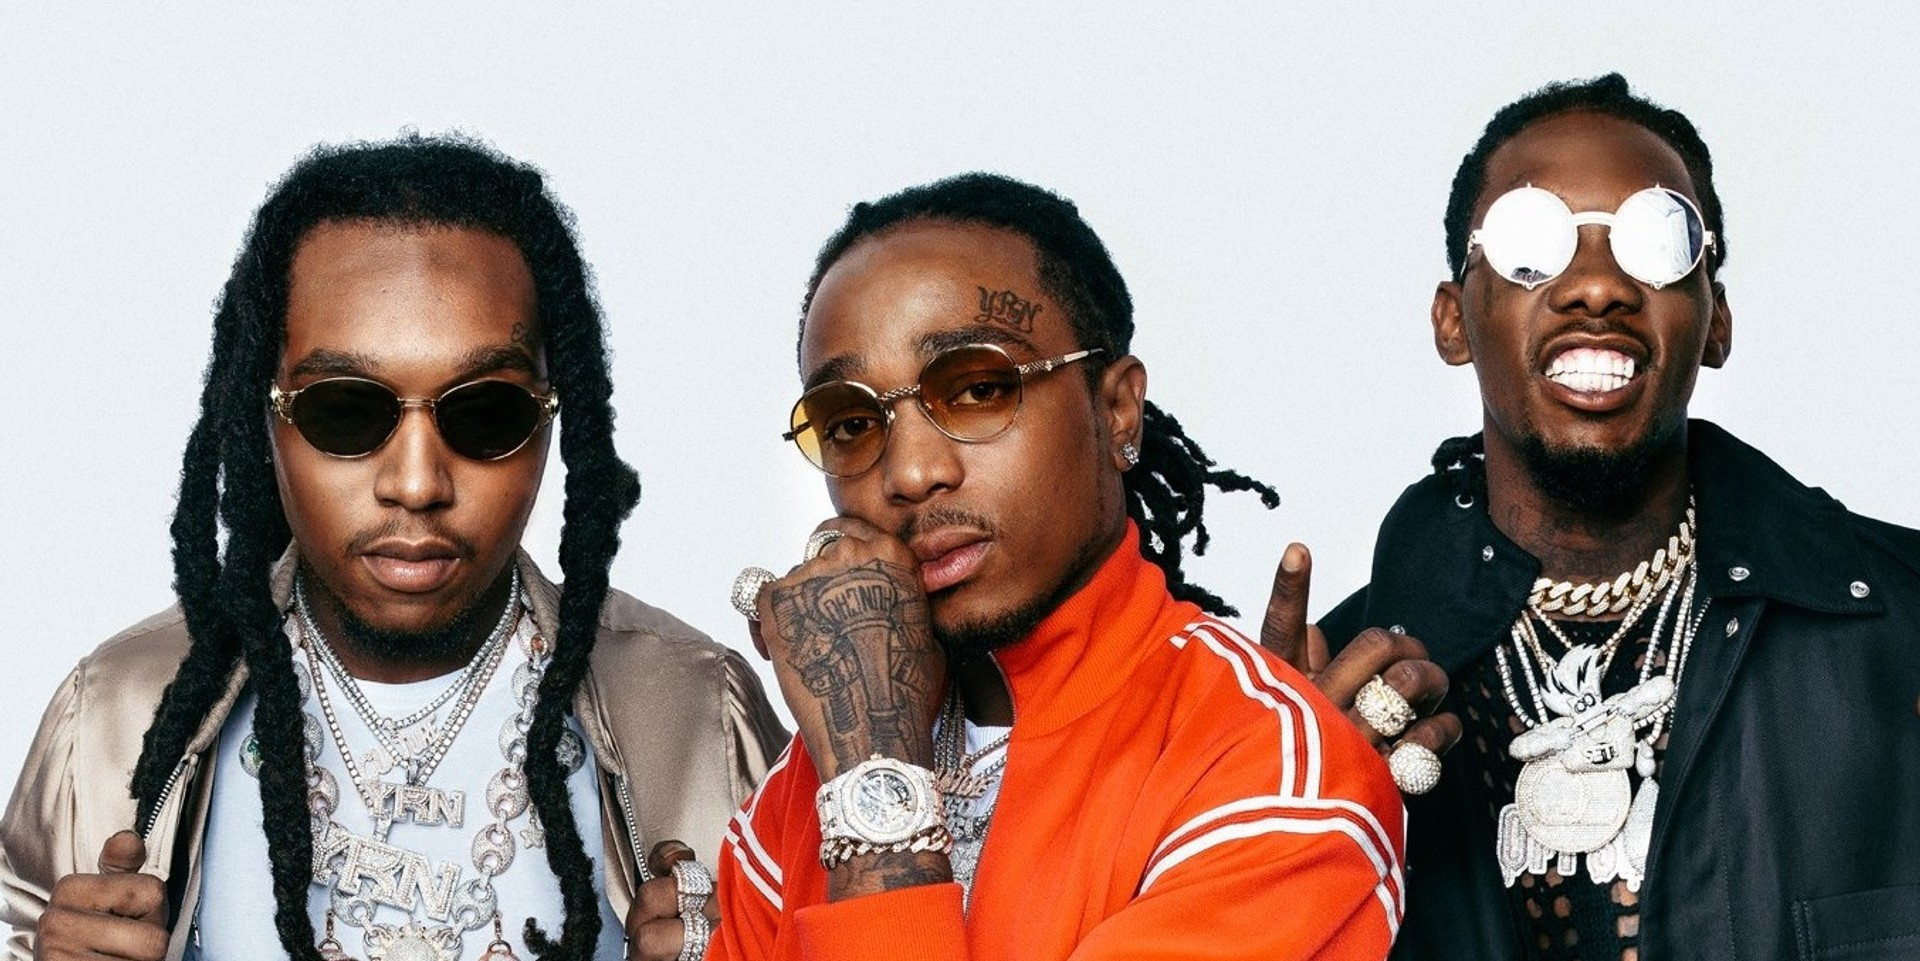 Migos join new season of The Rap of China as 'star producers'